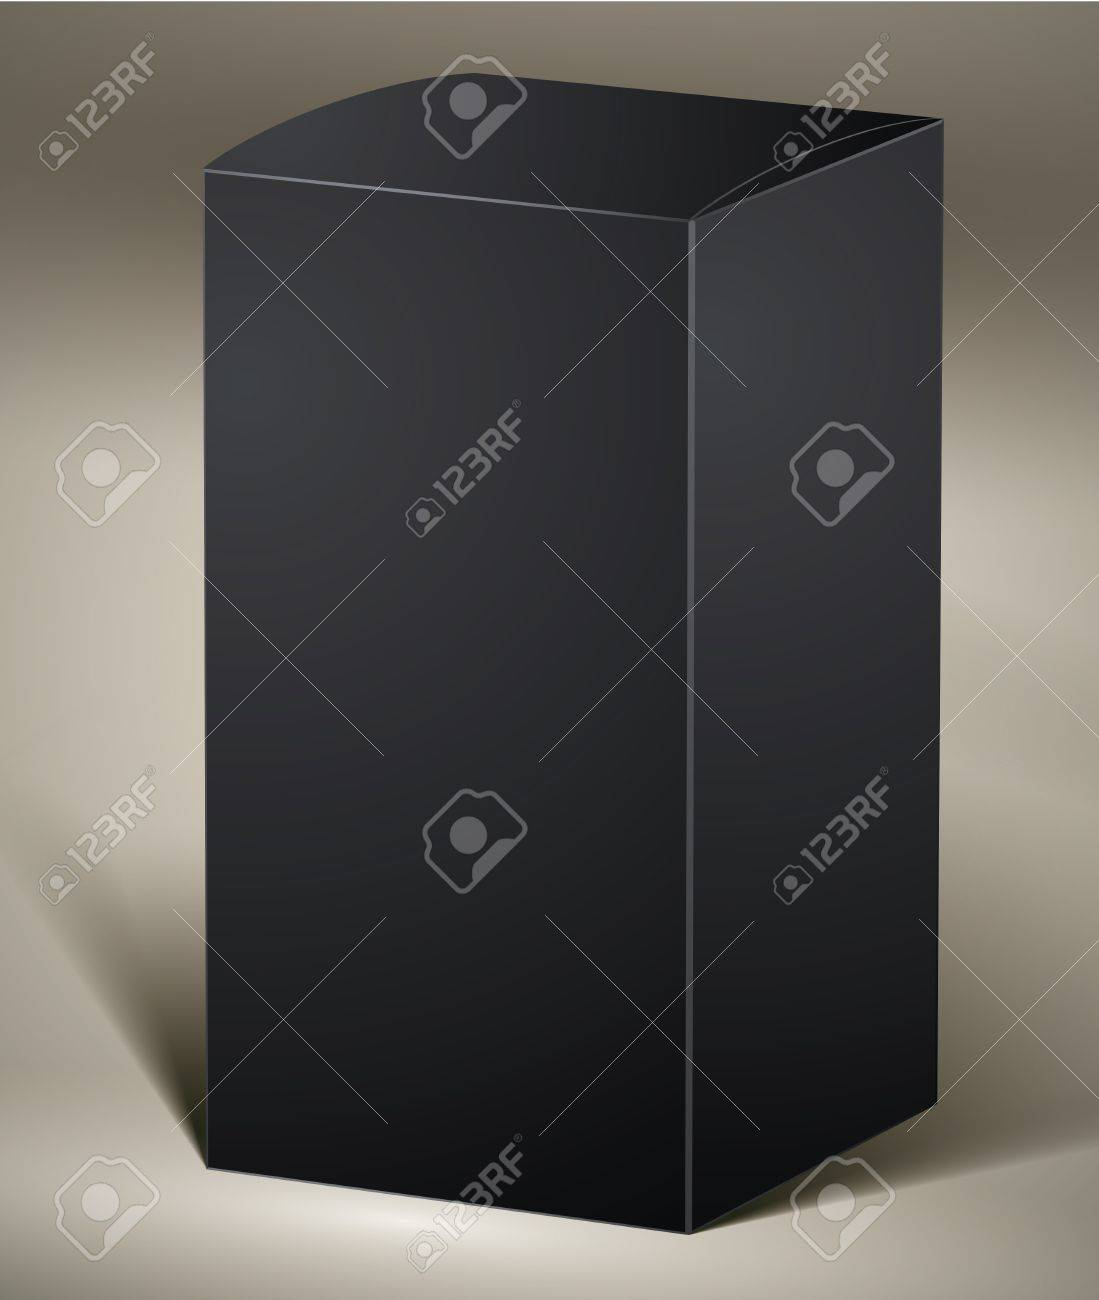 Black pack for design or product visualizing. Stock Vector - 15275346